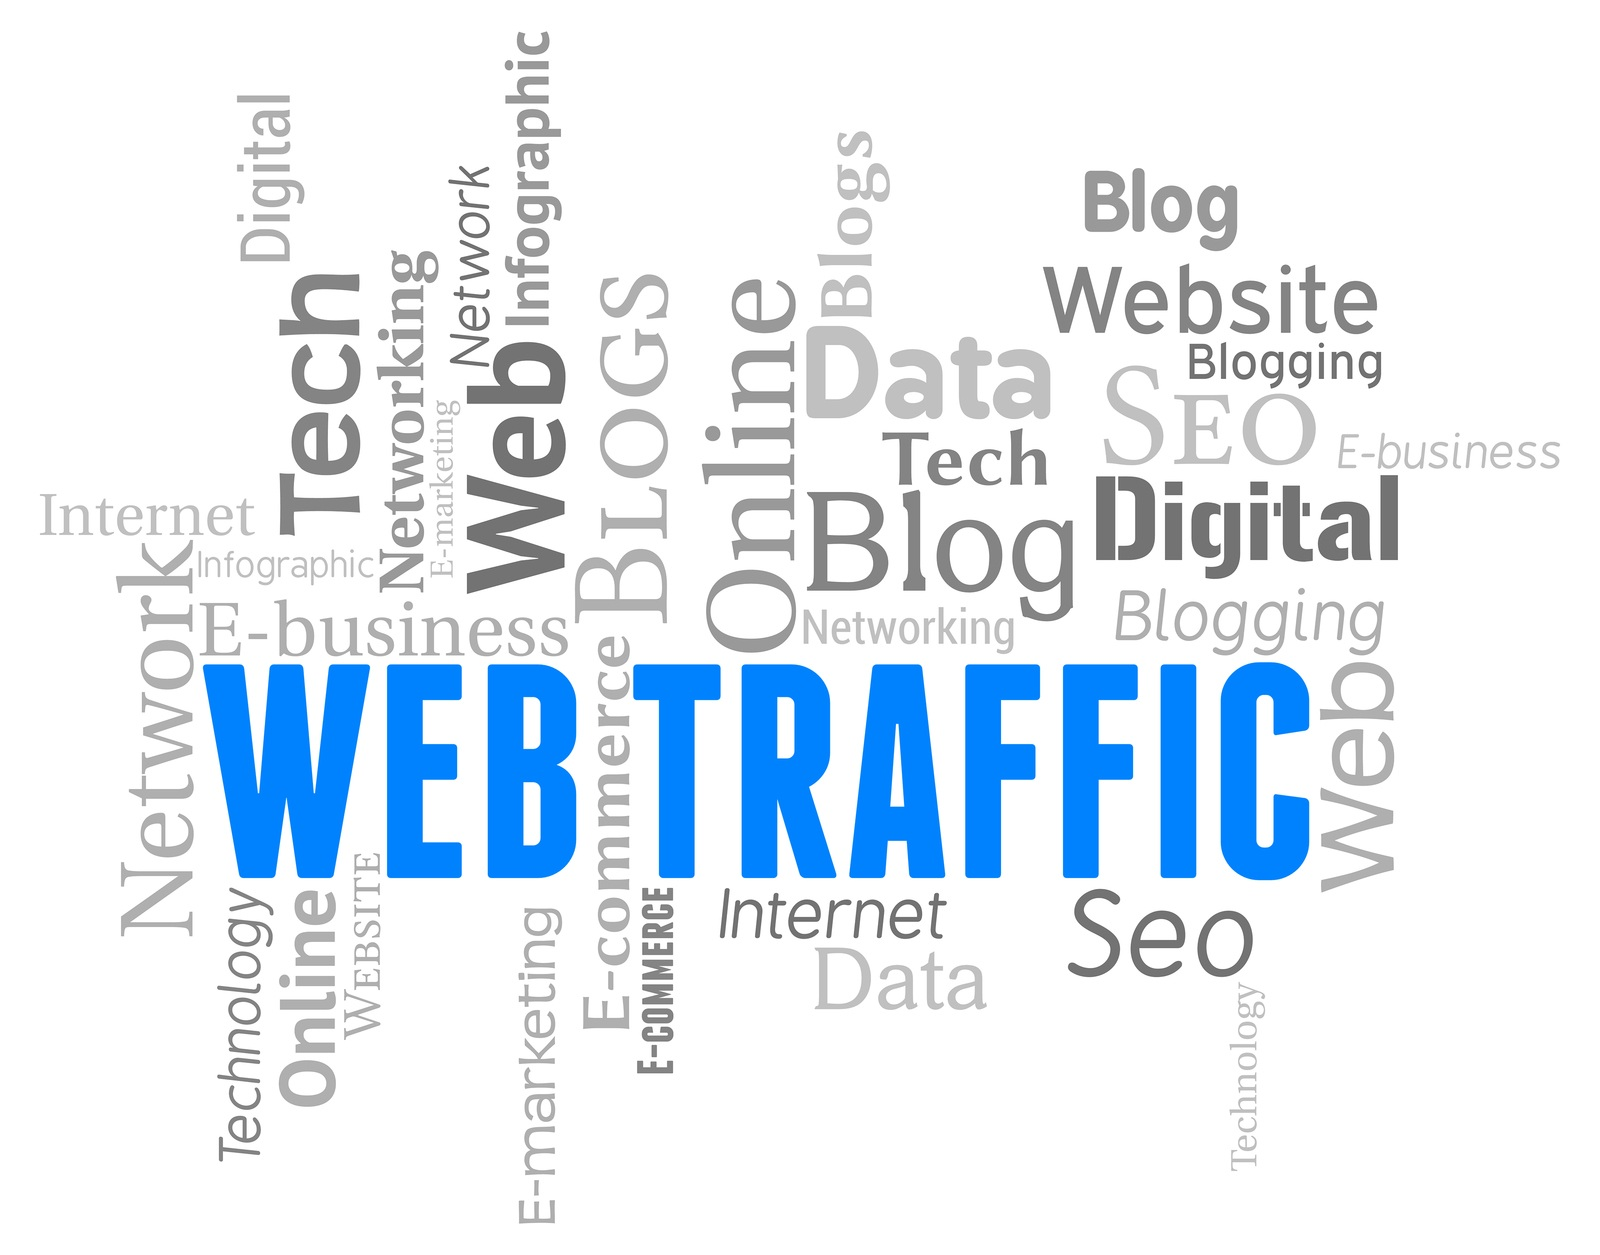 All you need to get free traffic sources for your web fast